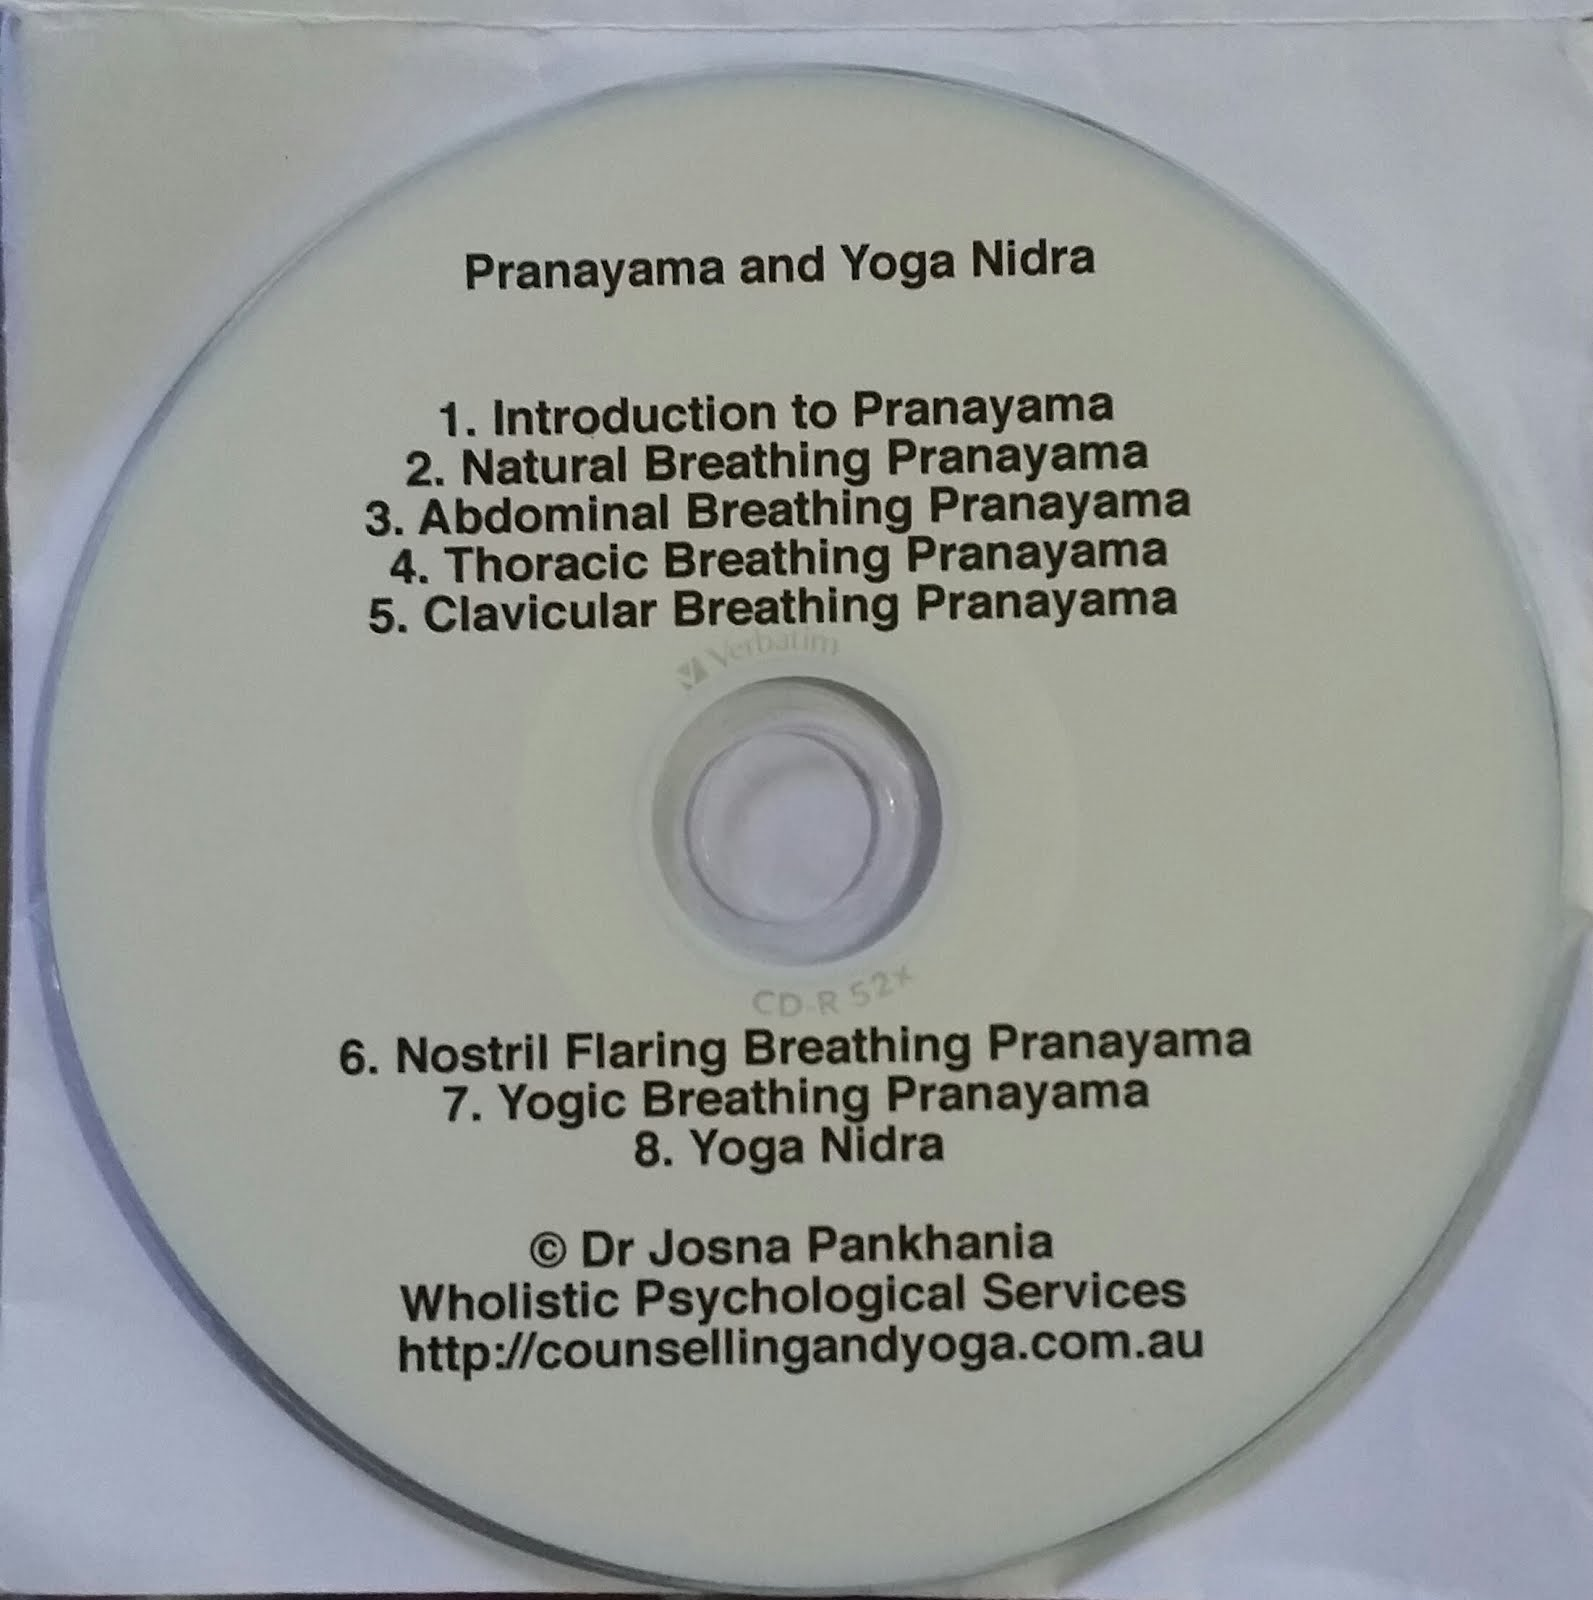 Audio CD @$15  For Pranayama and Yoga Nidra by Dr.Josna Pankhania